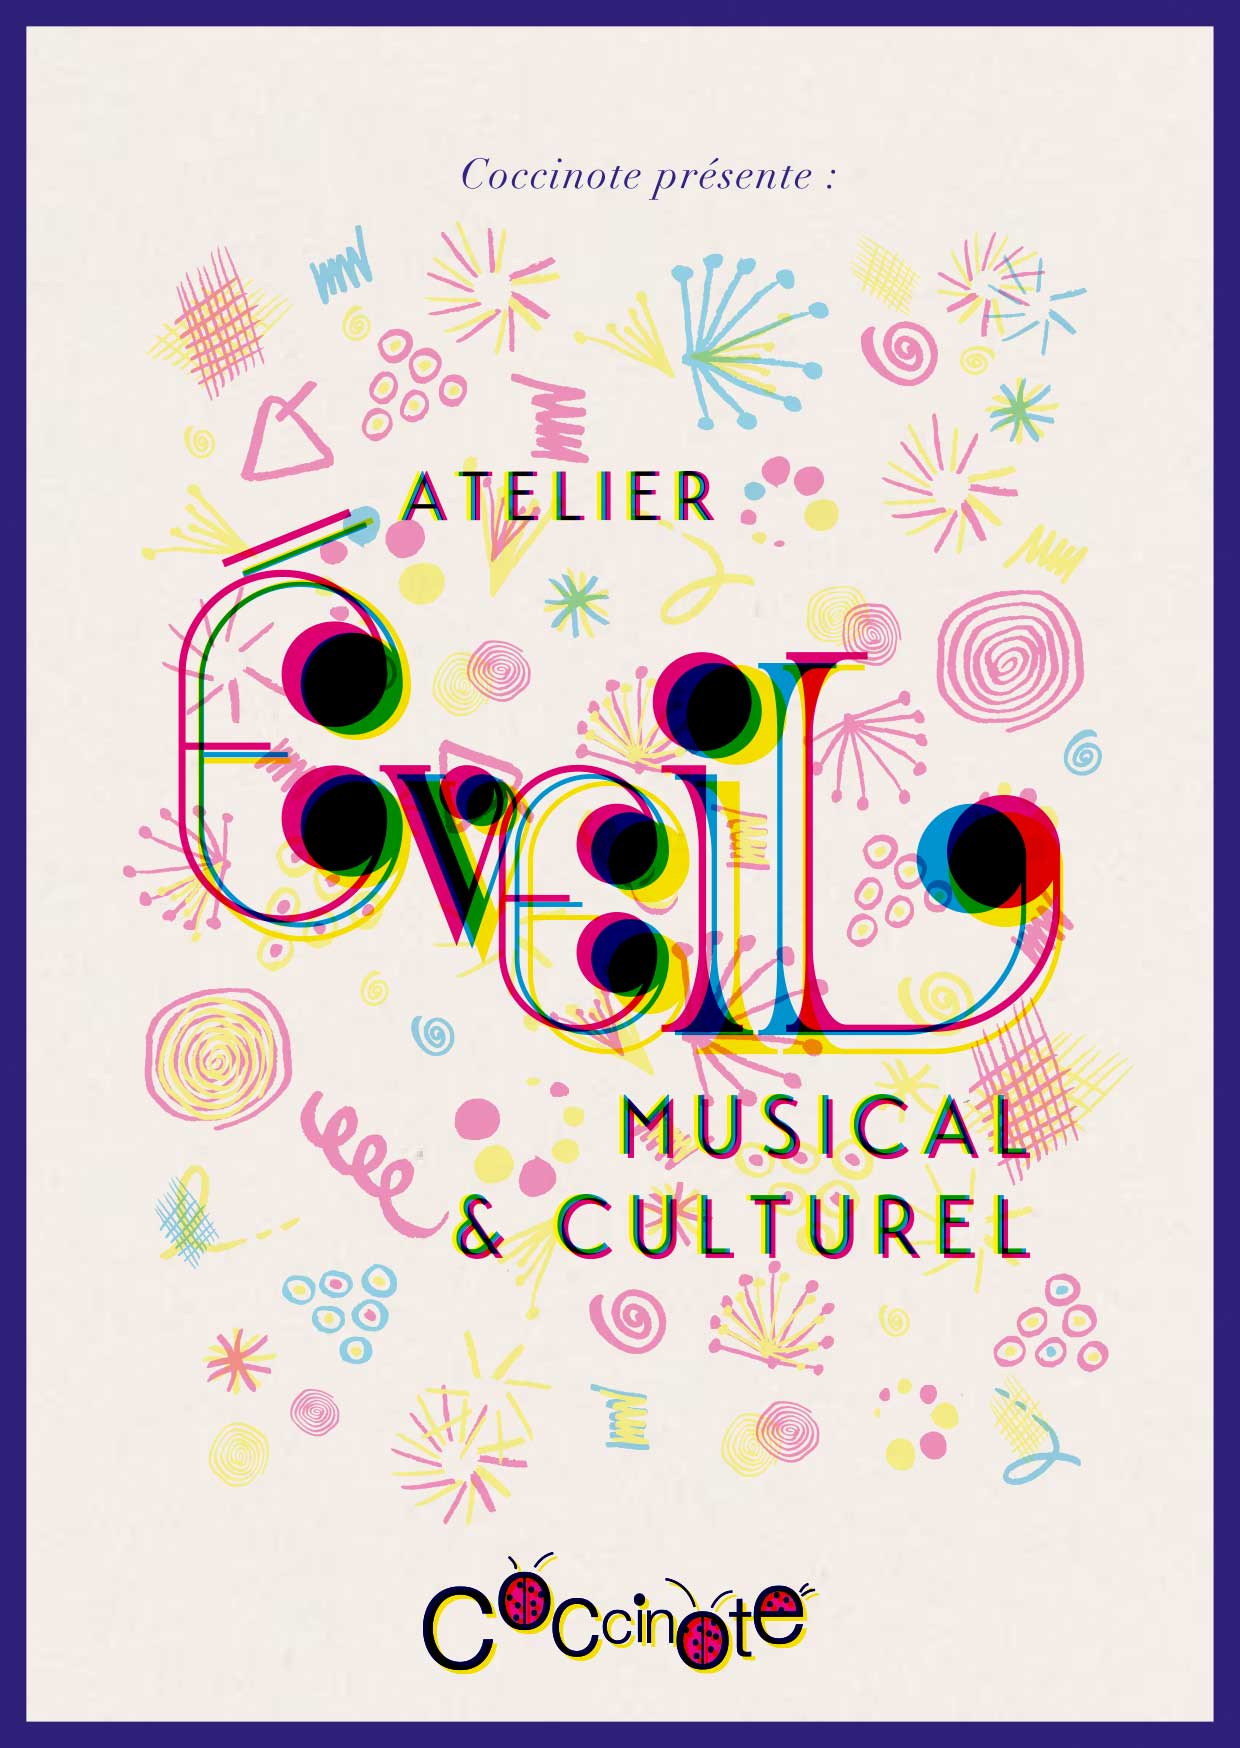 flyer_COCCINOTE_eveil_2016-17BD